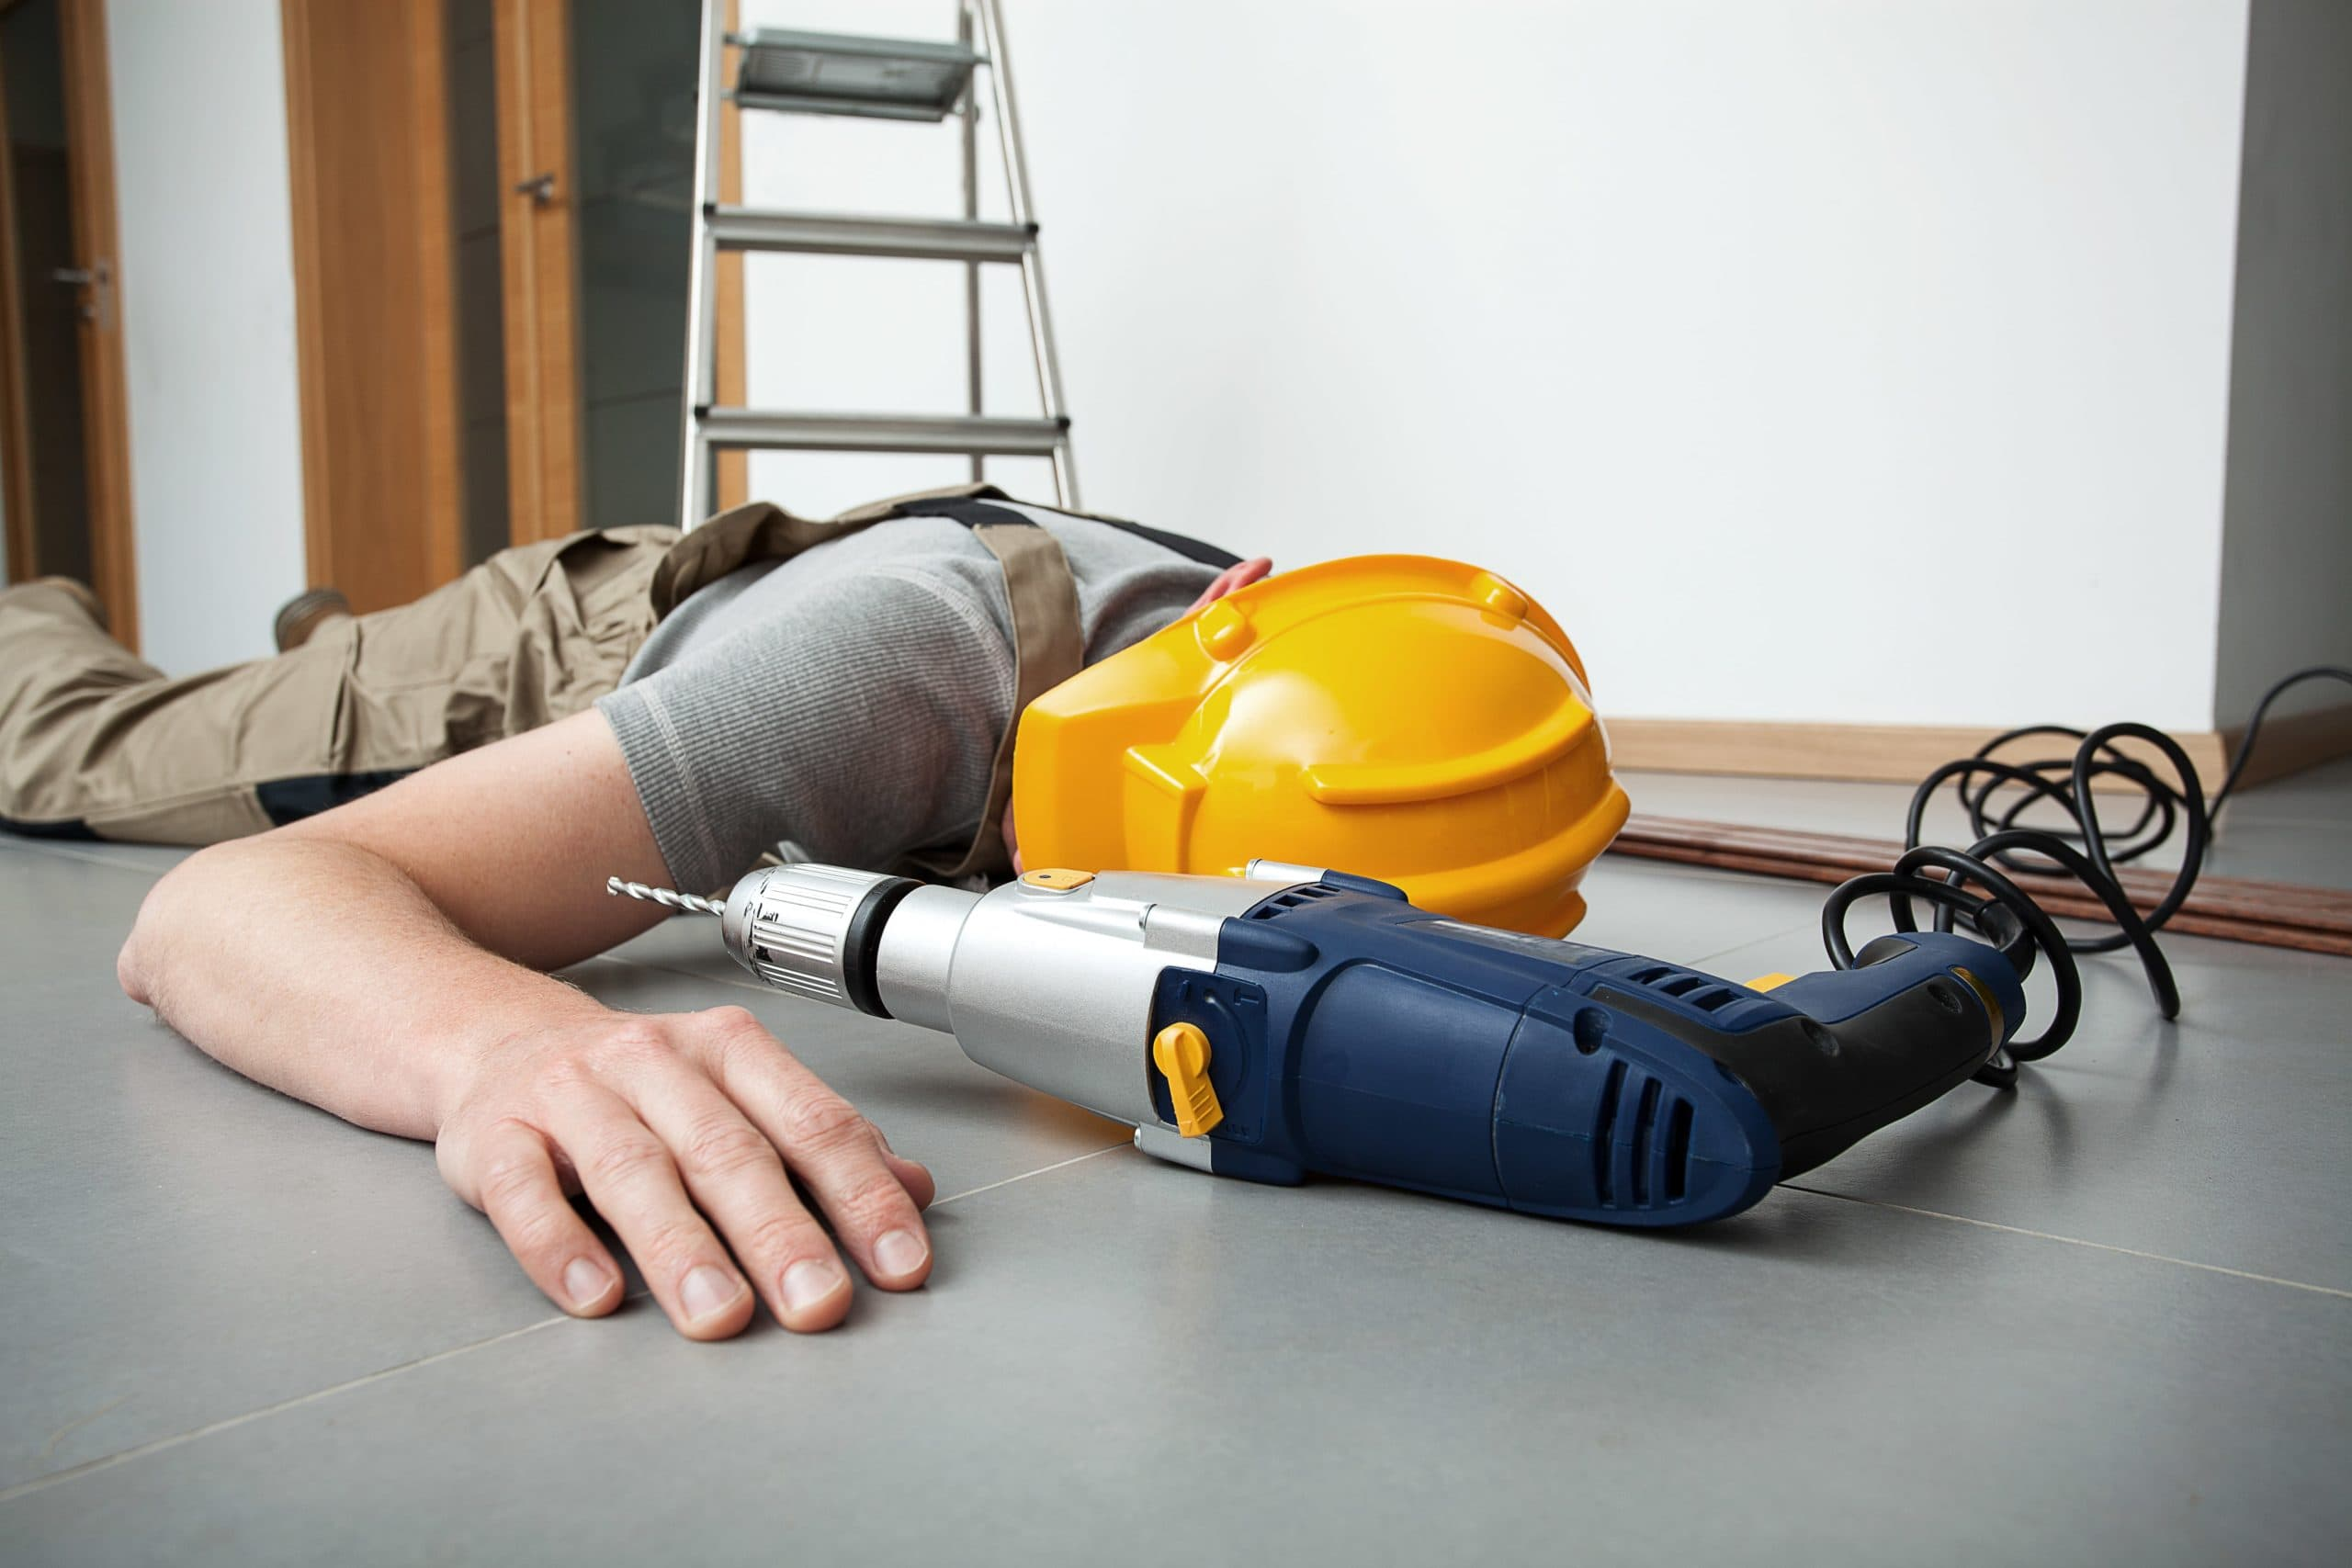 Electrician getting injured while fixing wires.